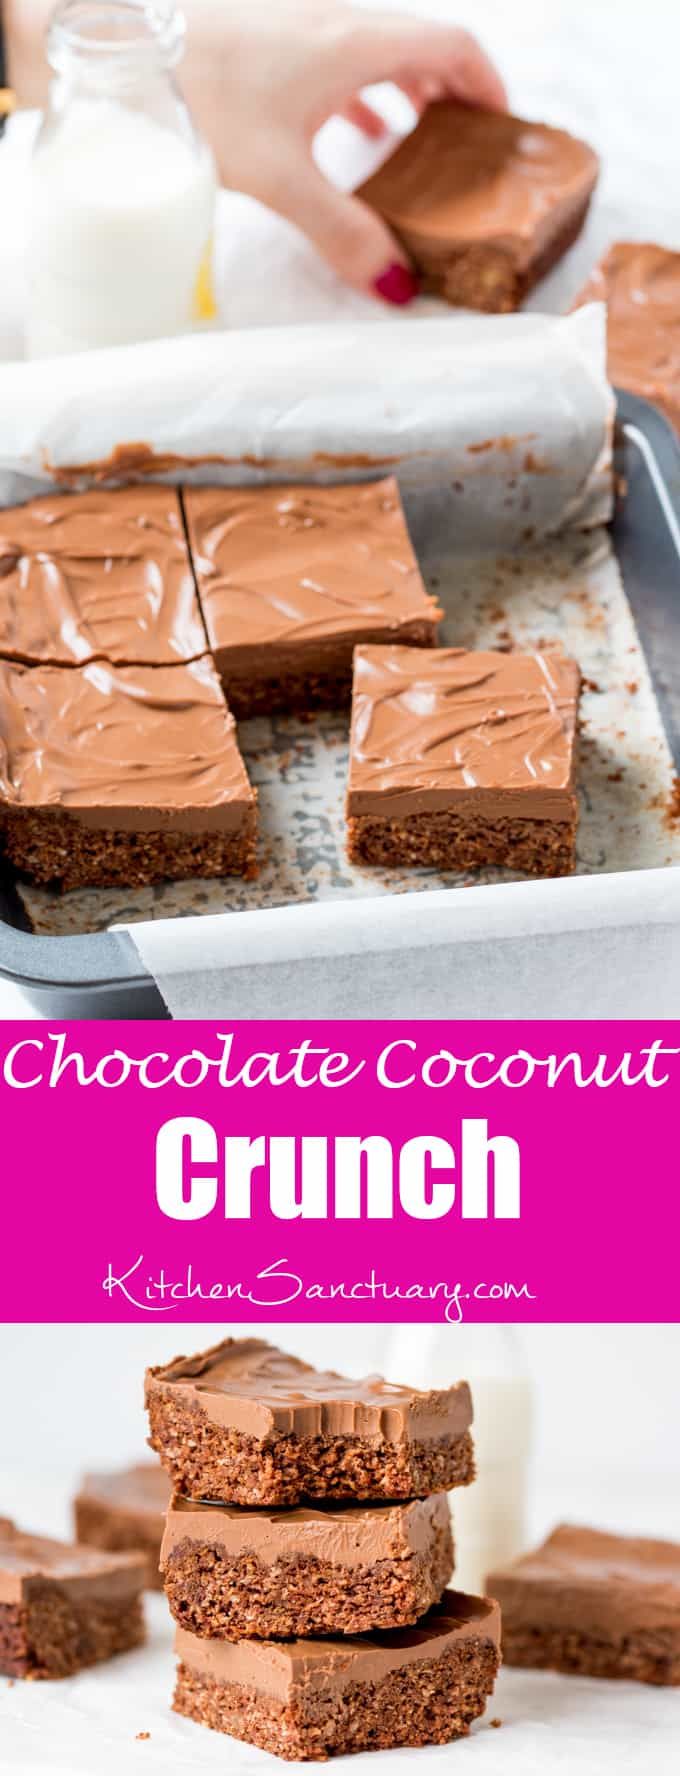 Chocolate Coconut Crunch